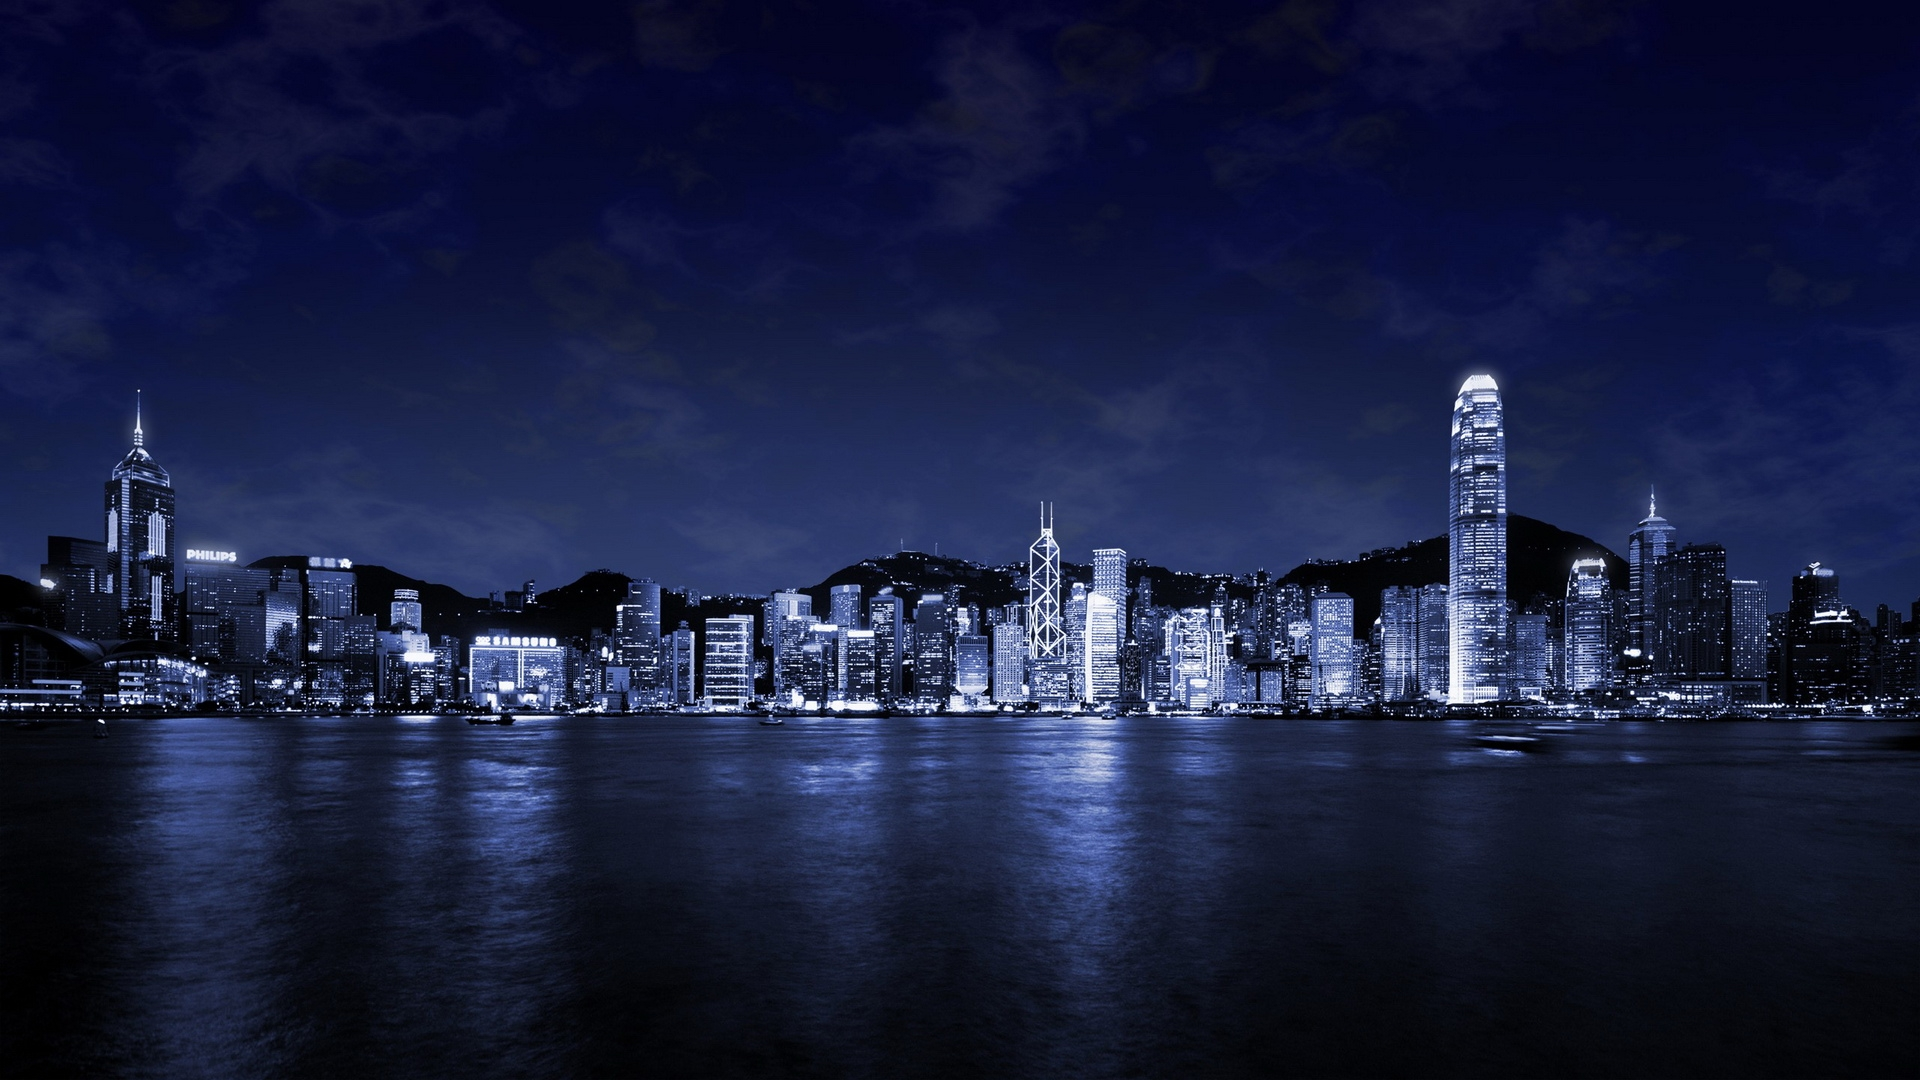 1920x1080 City at Night desktop PC and Mac wallpaper 1920x1080